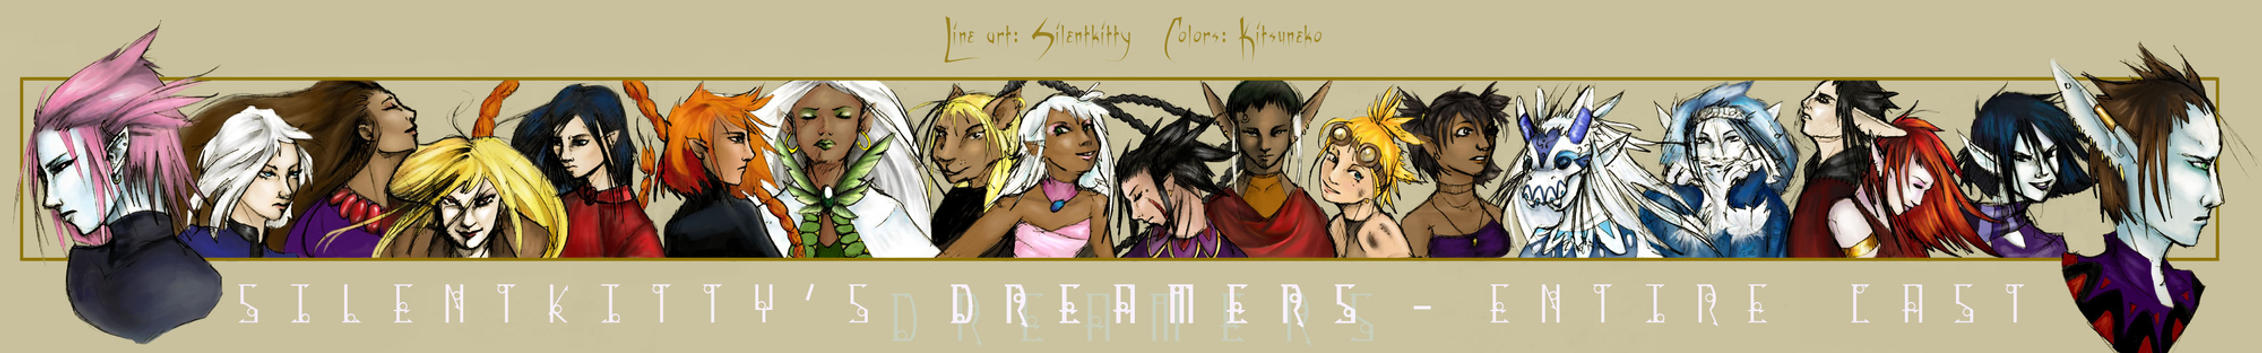 Silentkitty's Dreamers by kitsuneko